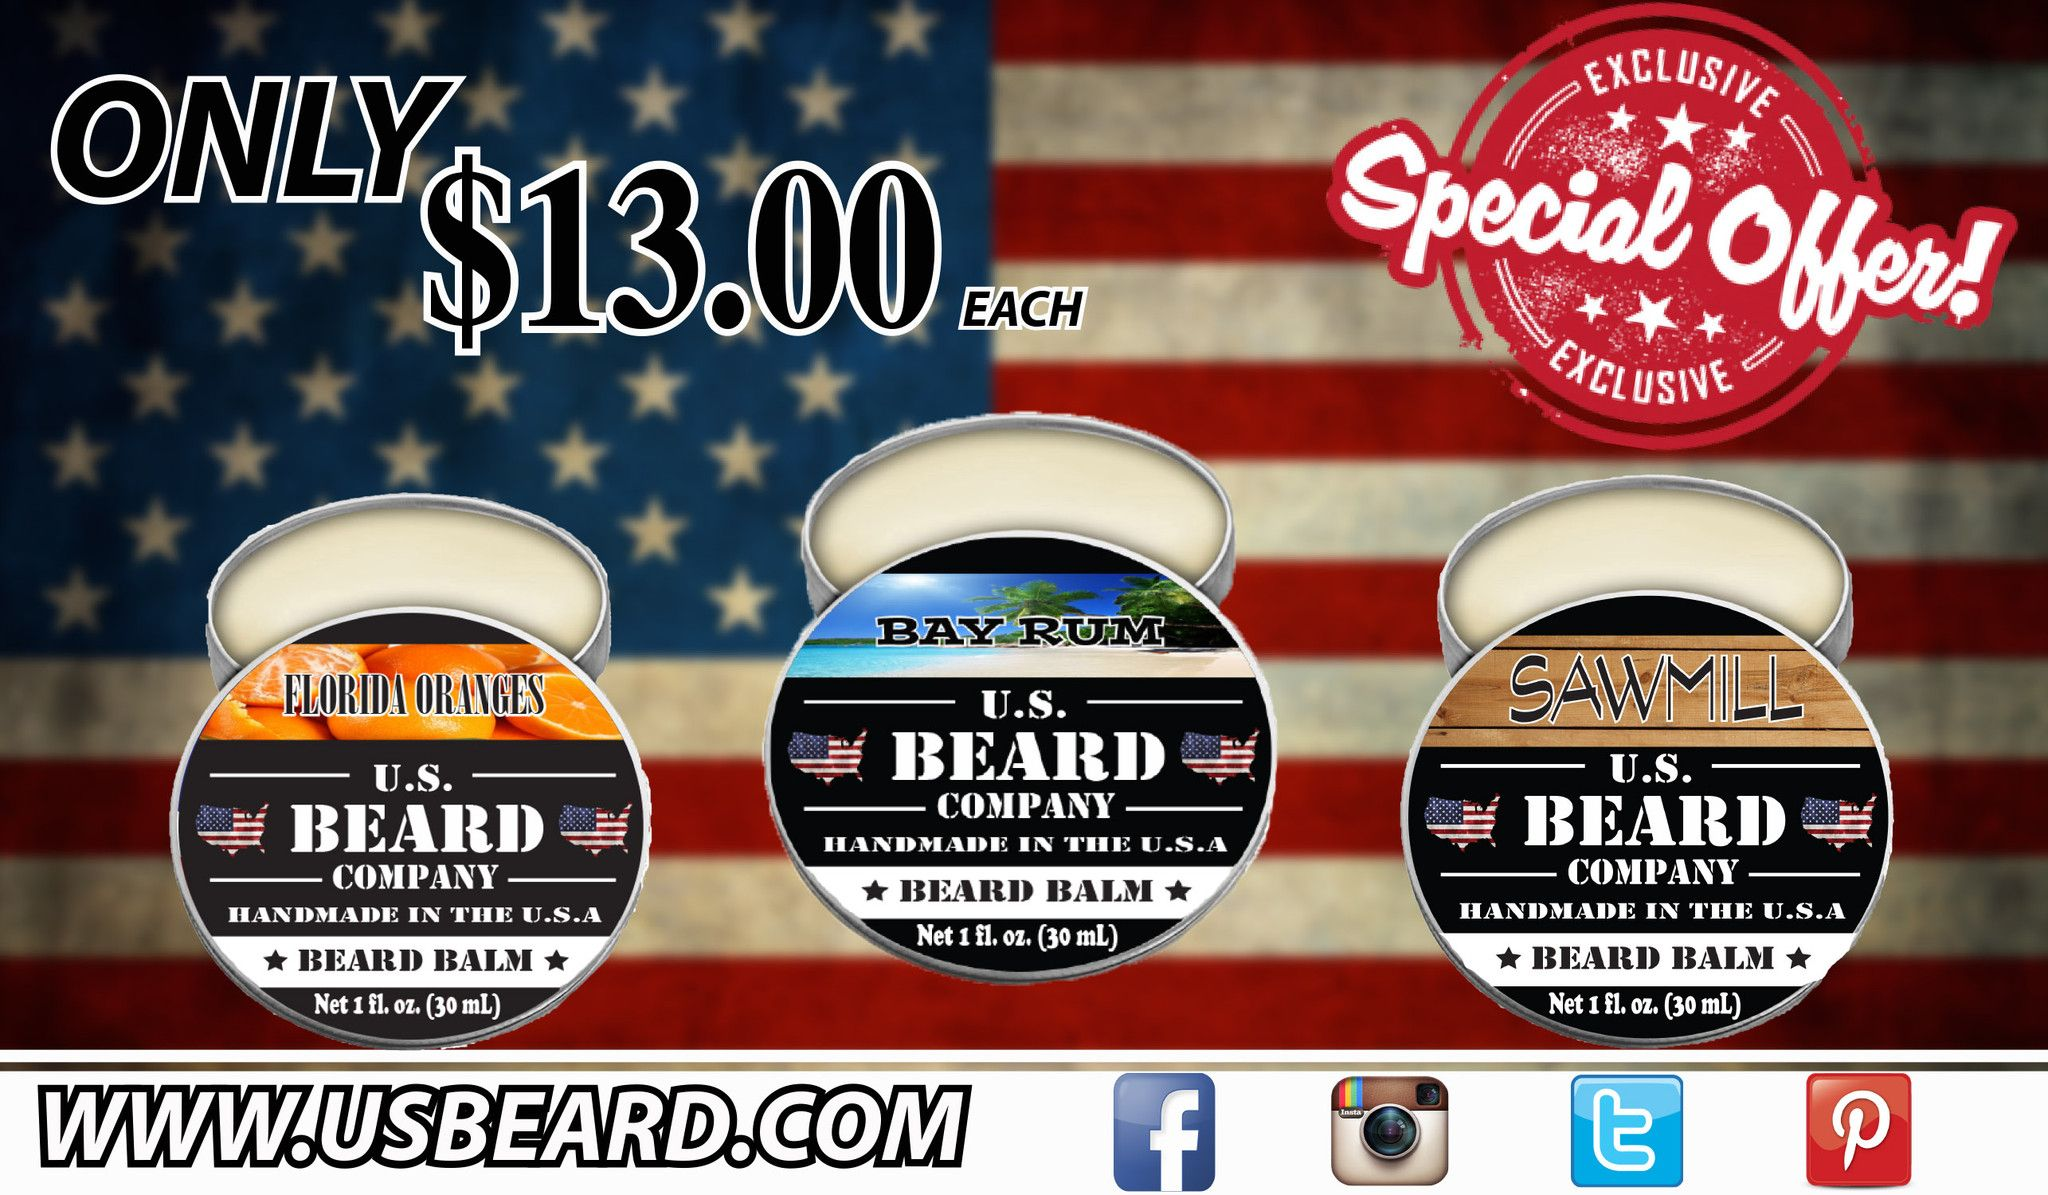 Premium Beard Balm will help you condition and protect that face forest. Each scent has a unique and invorating aroma. Try one or try them all promo code 10off50 for $10 off orders of $50 or more...